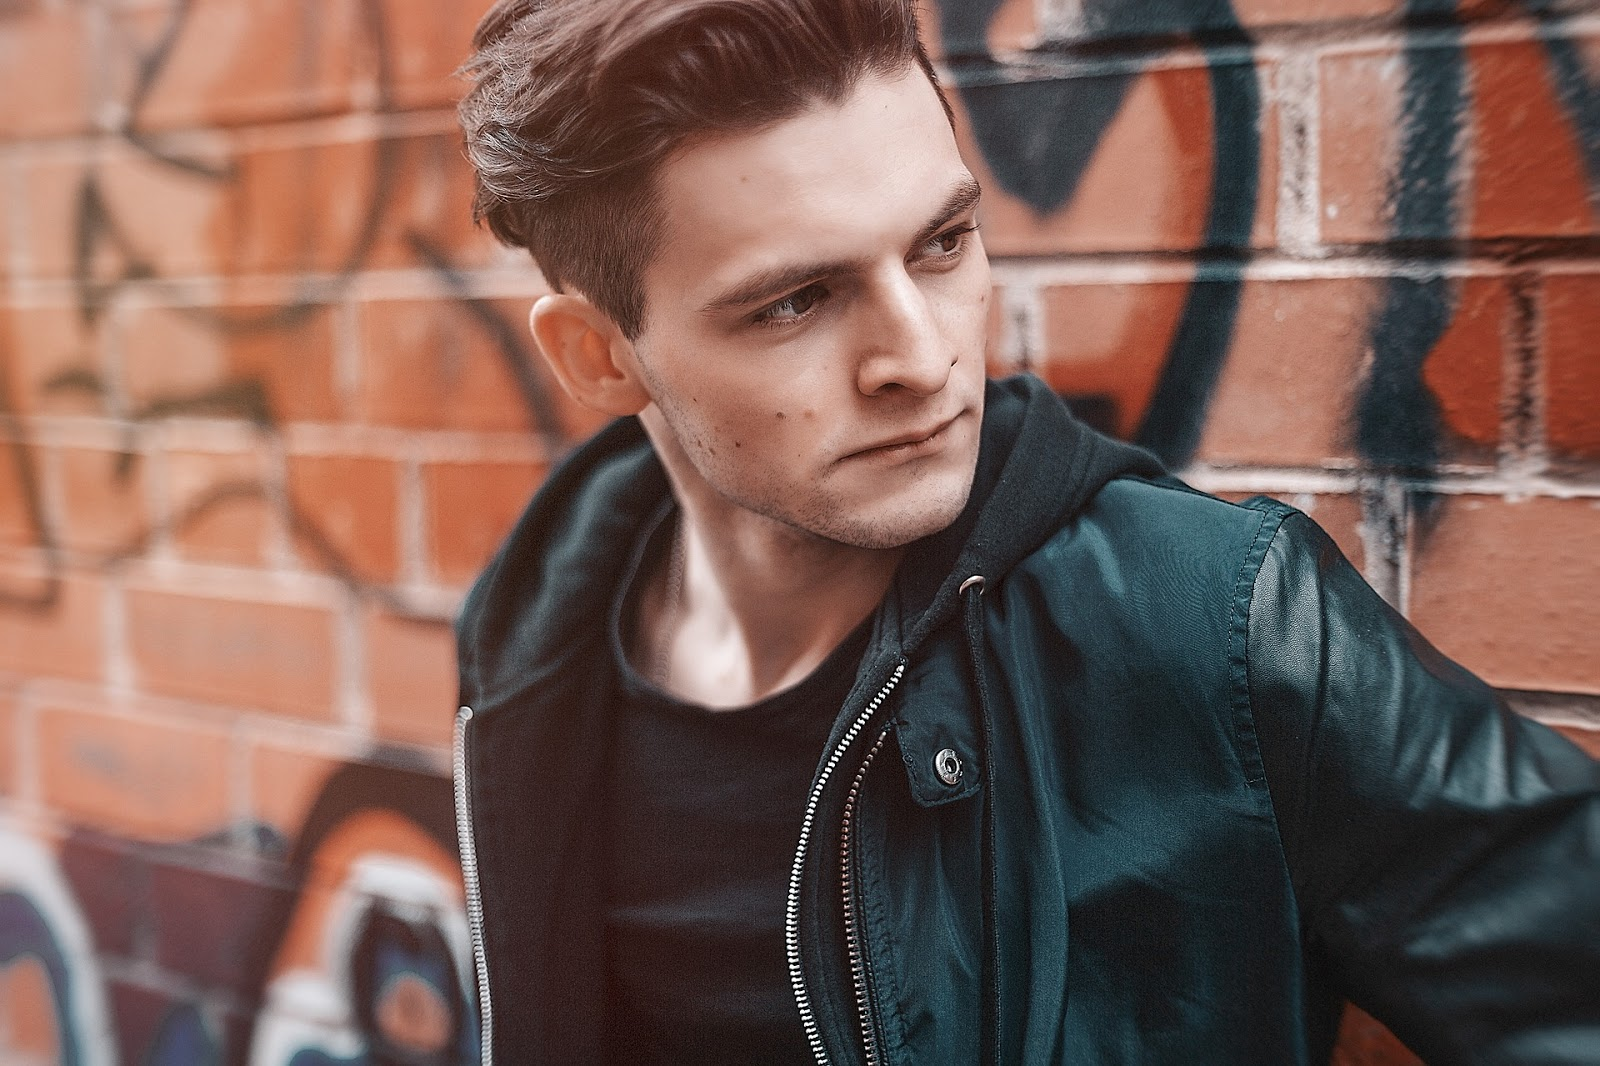 Coolest Men's Hair Styles To Try This Year. | Grooming